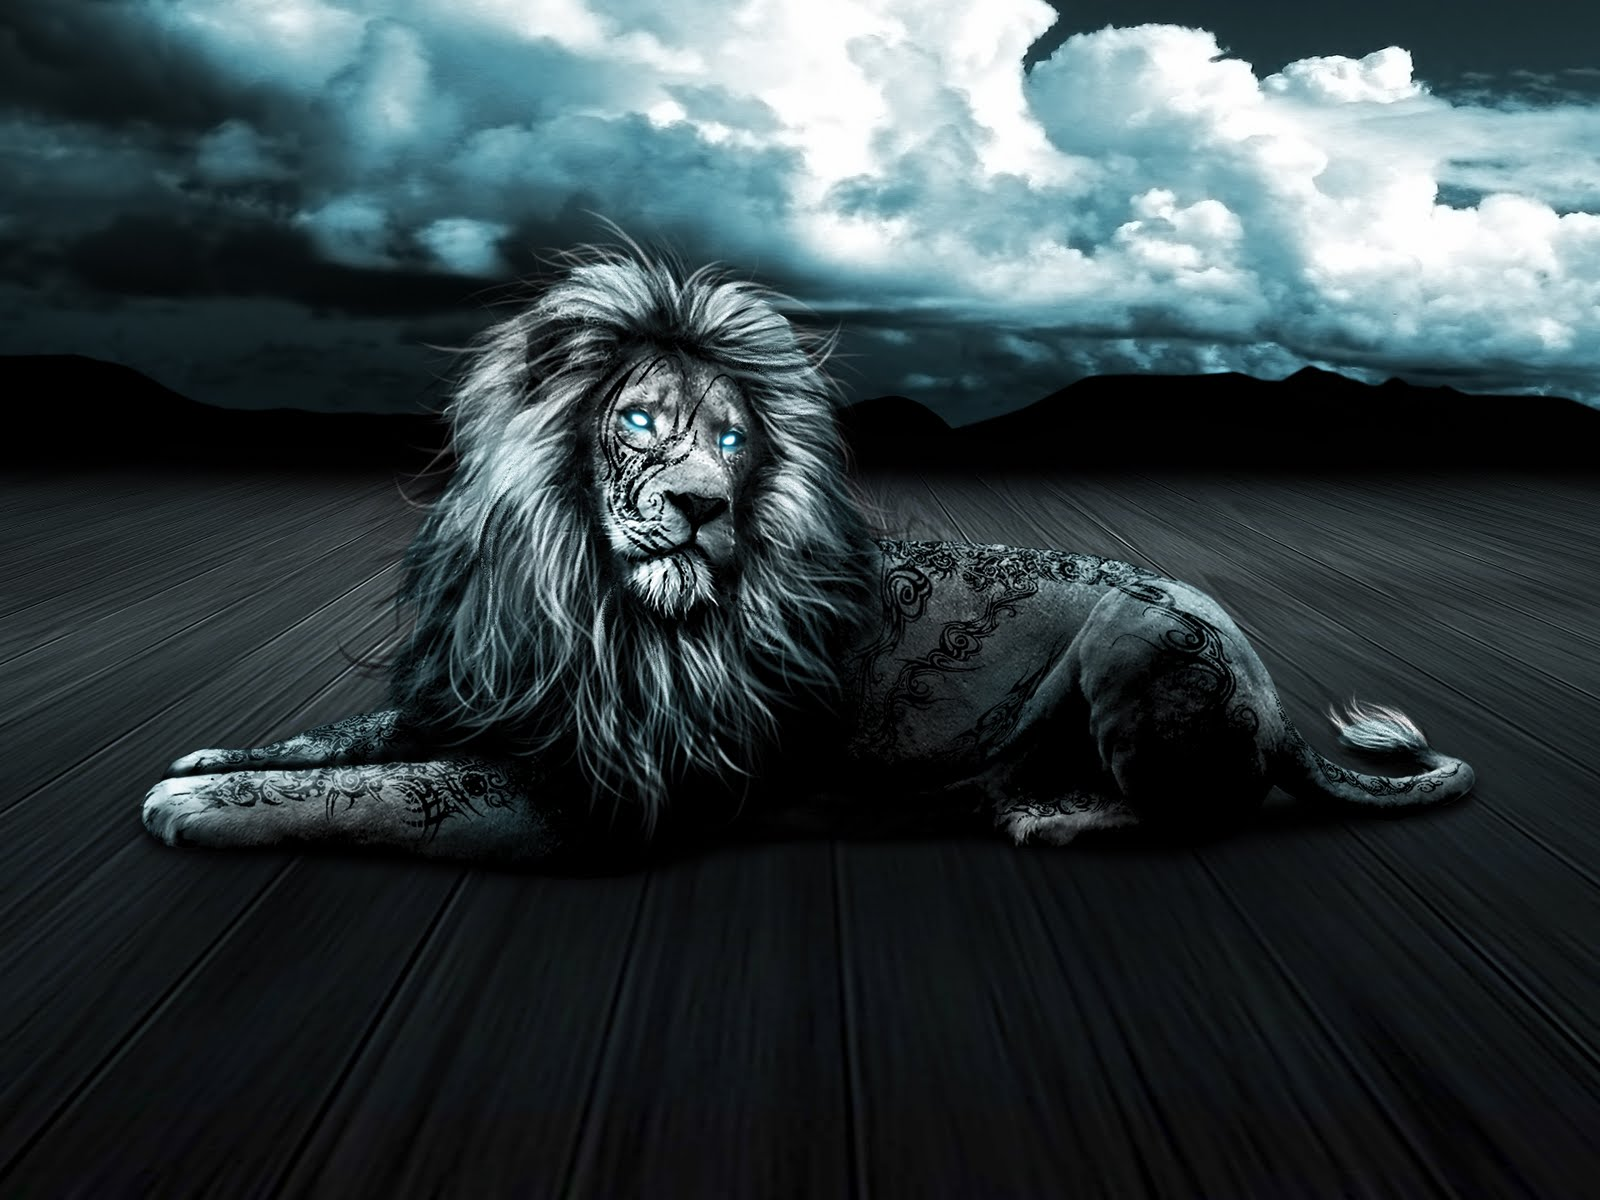 Wallpaper Lion Images With Black Background